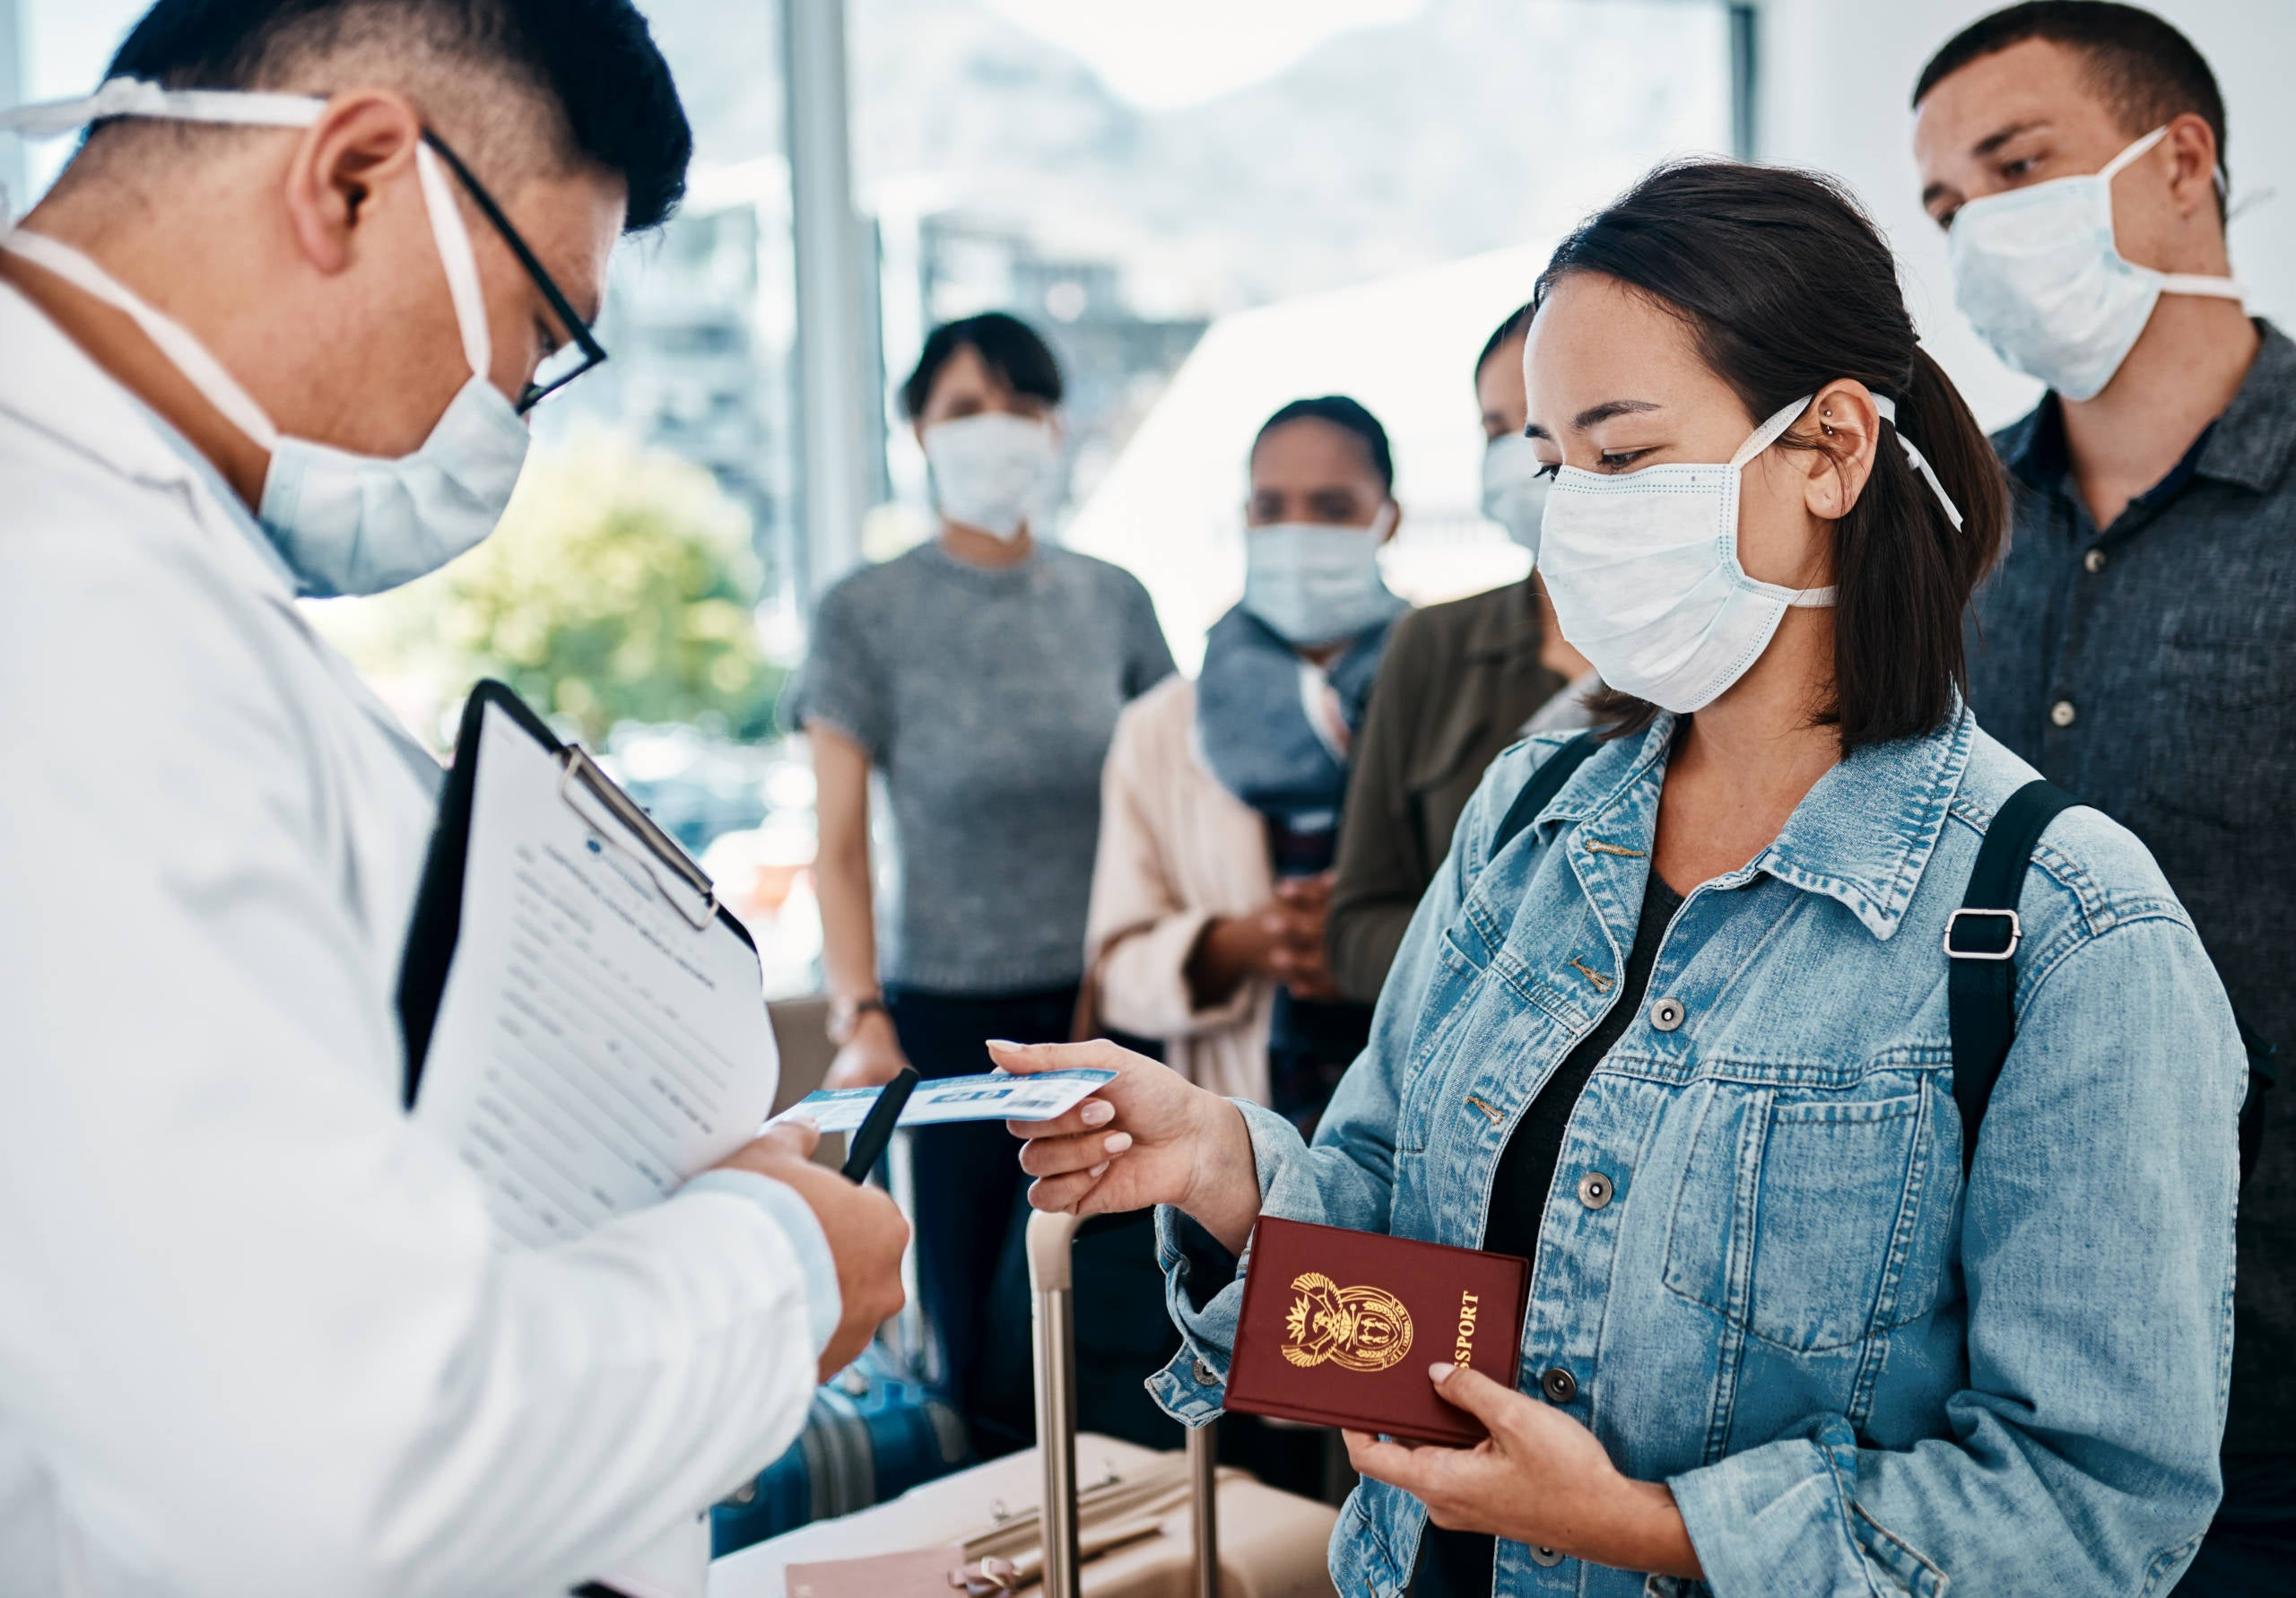 Do you need a coronavirus test to fly? - The Points Guy